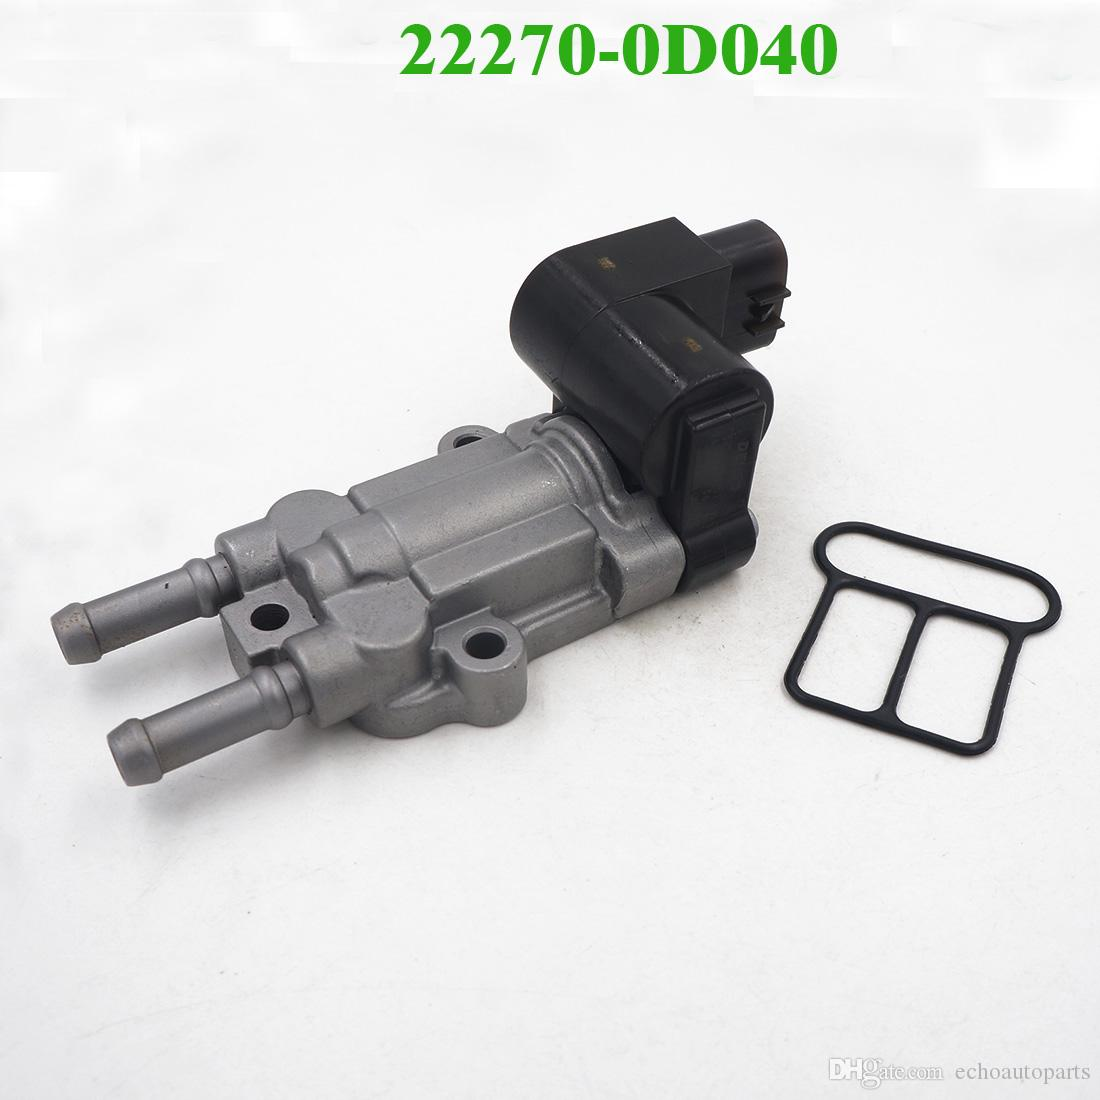 22270-0D040 Idle Air Control Valve Fits:Vibe Toyot Corolla Matrix 2003-2006 /&